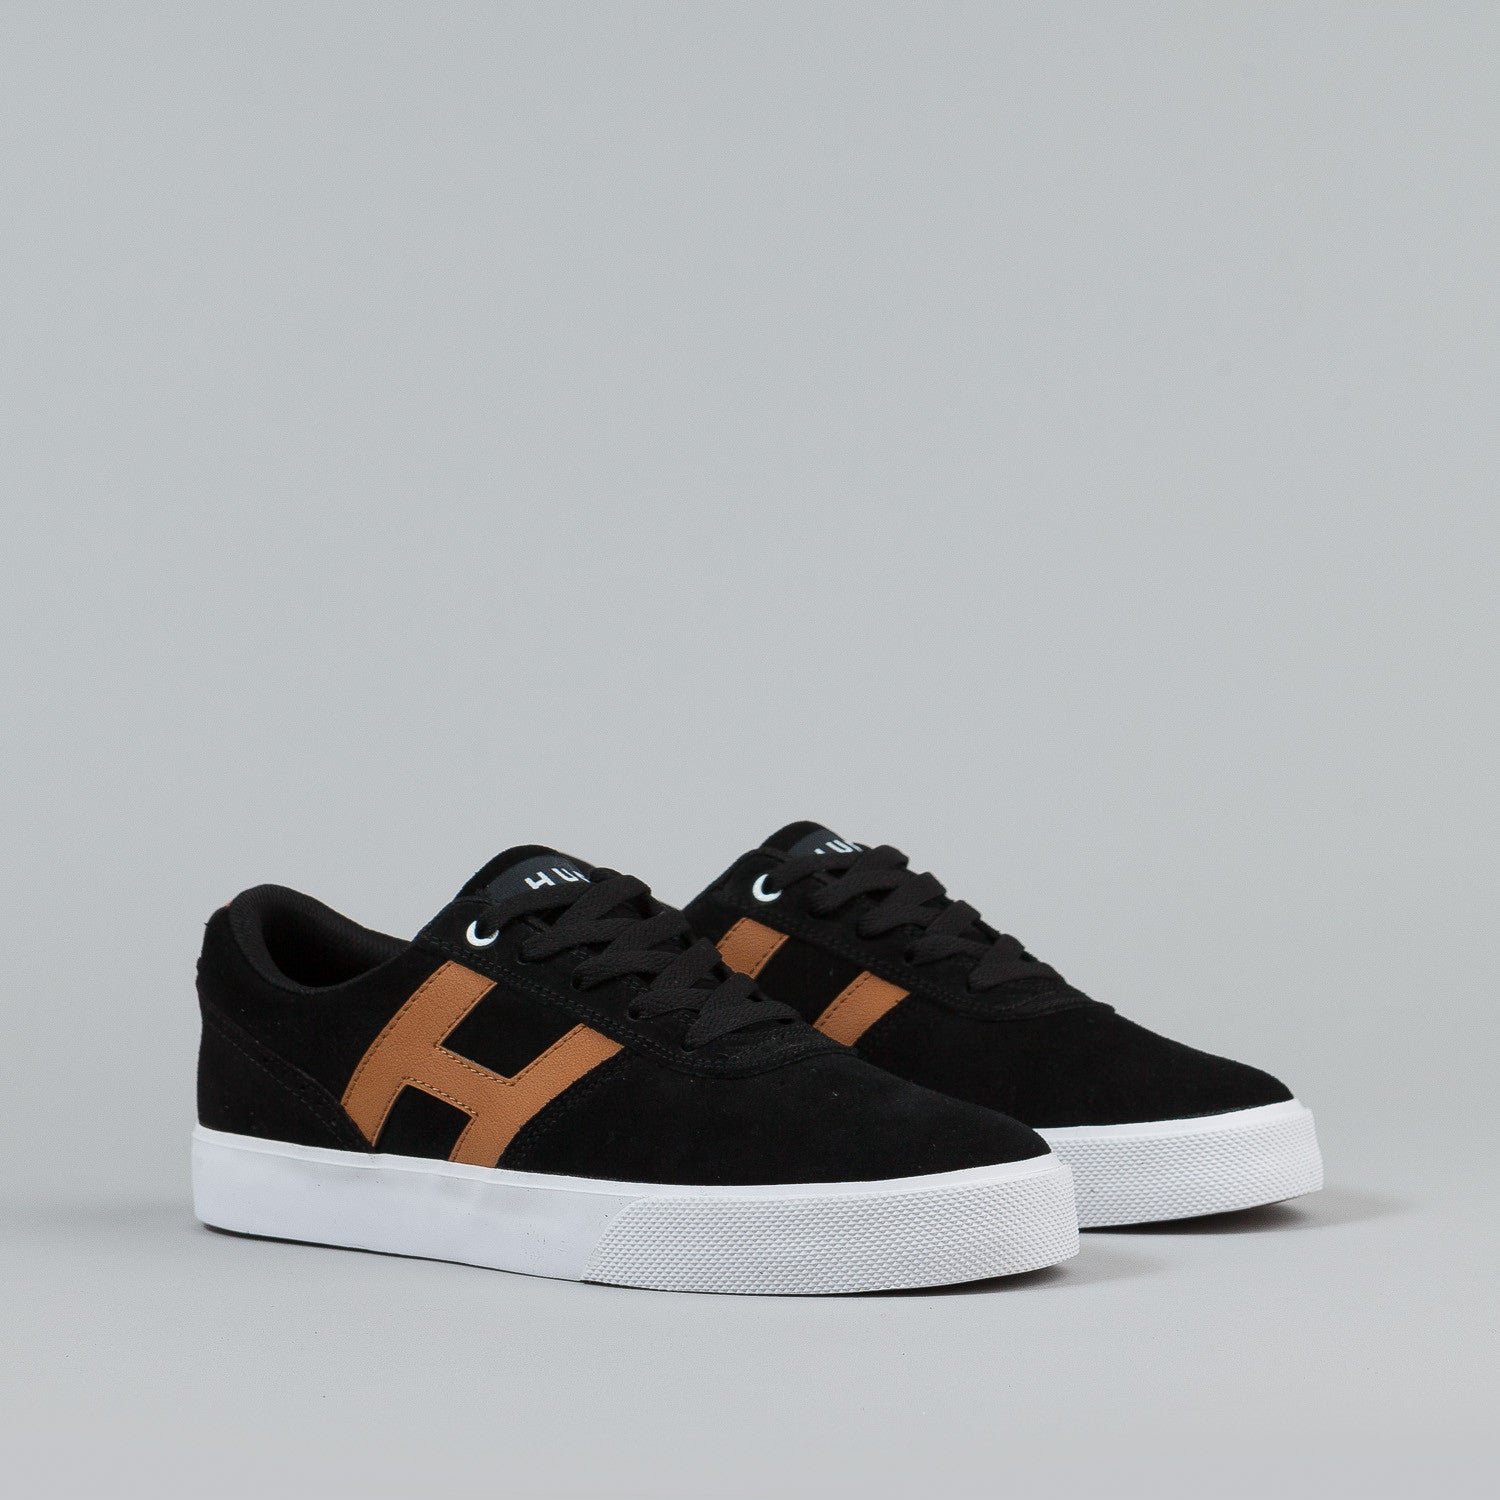 HUF Choice Shoes - Black / Tan